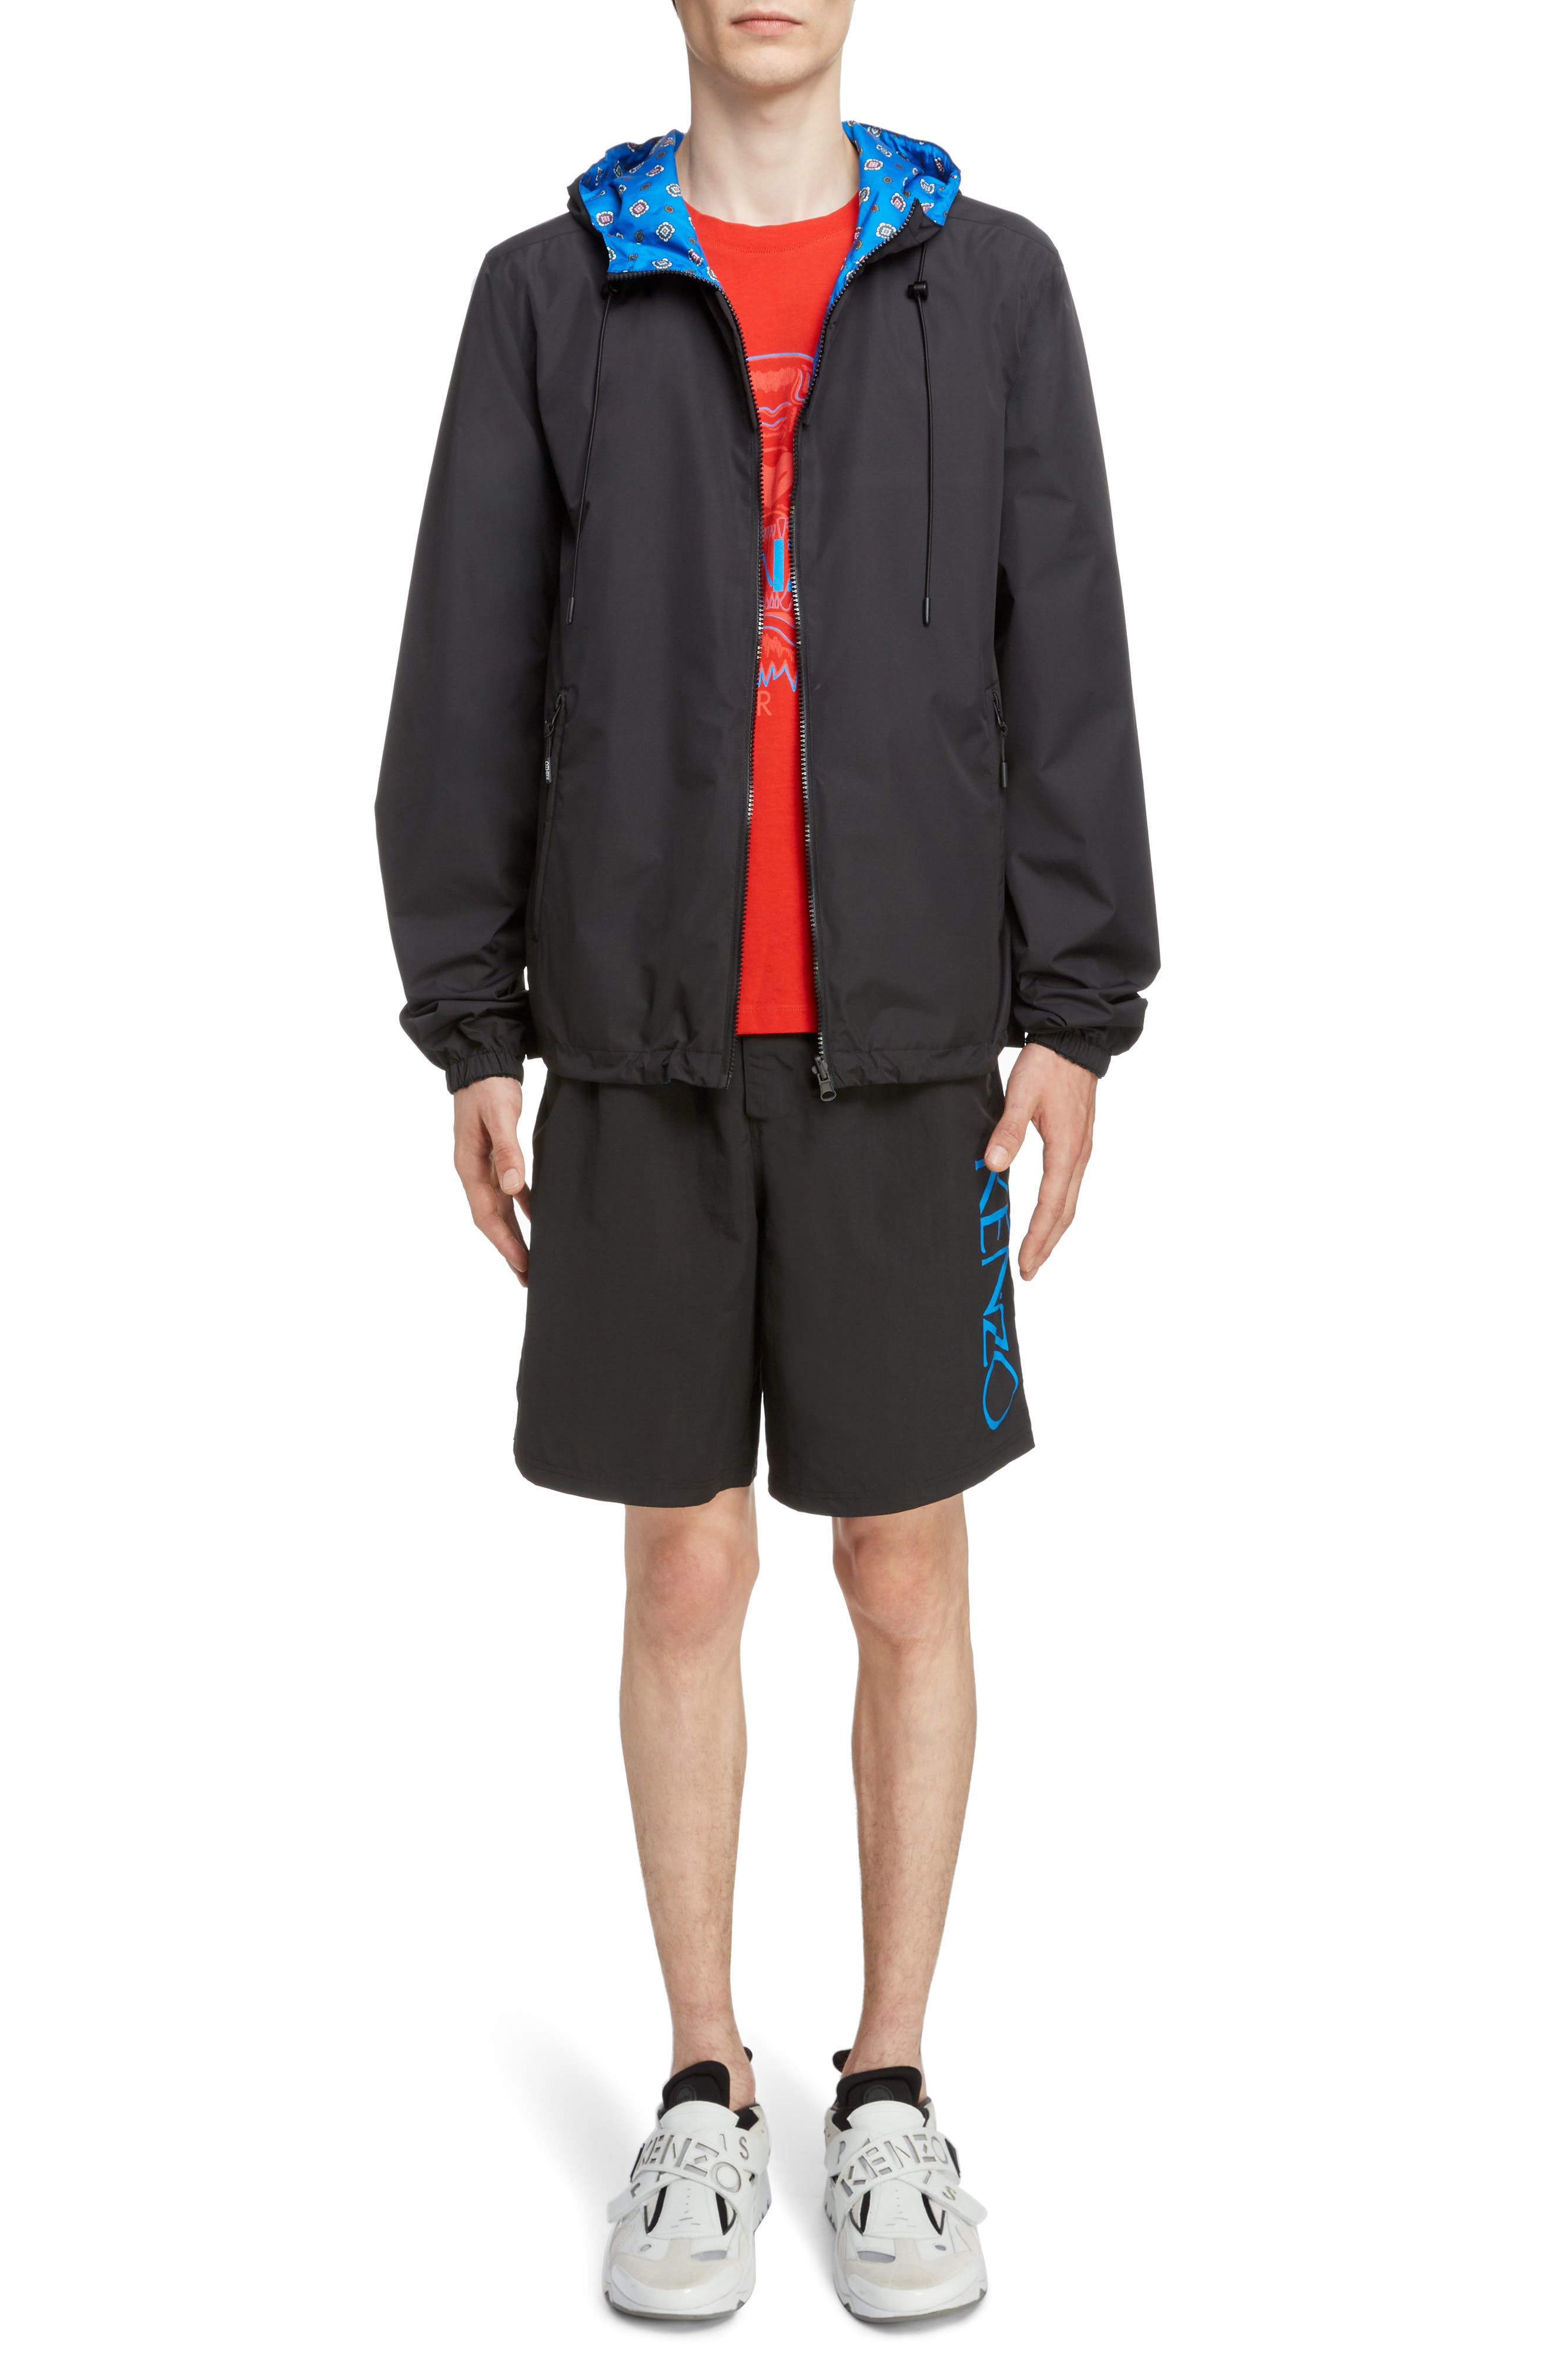 KENZO, Reversible Hooded Windbreaker, Alternate thumbnail 7, color, BLACK